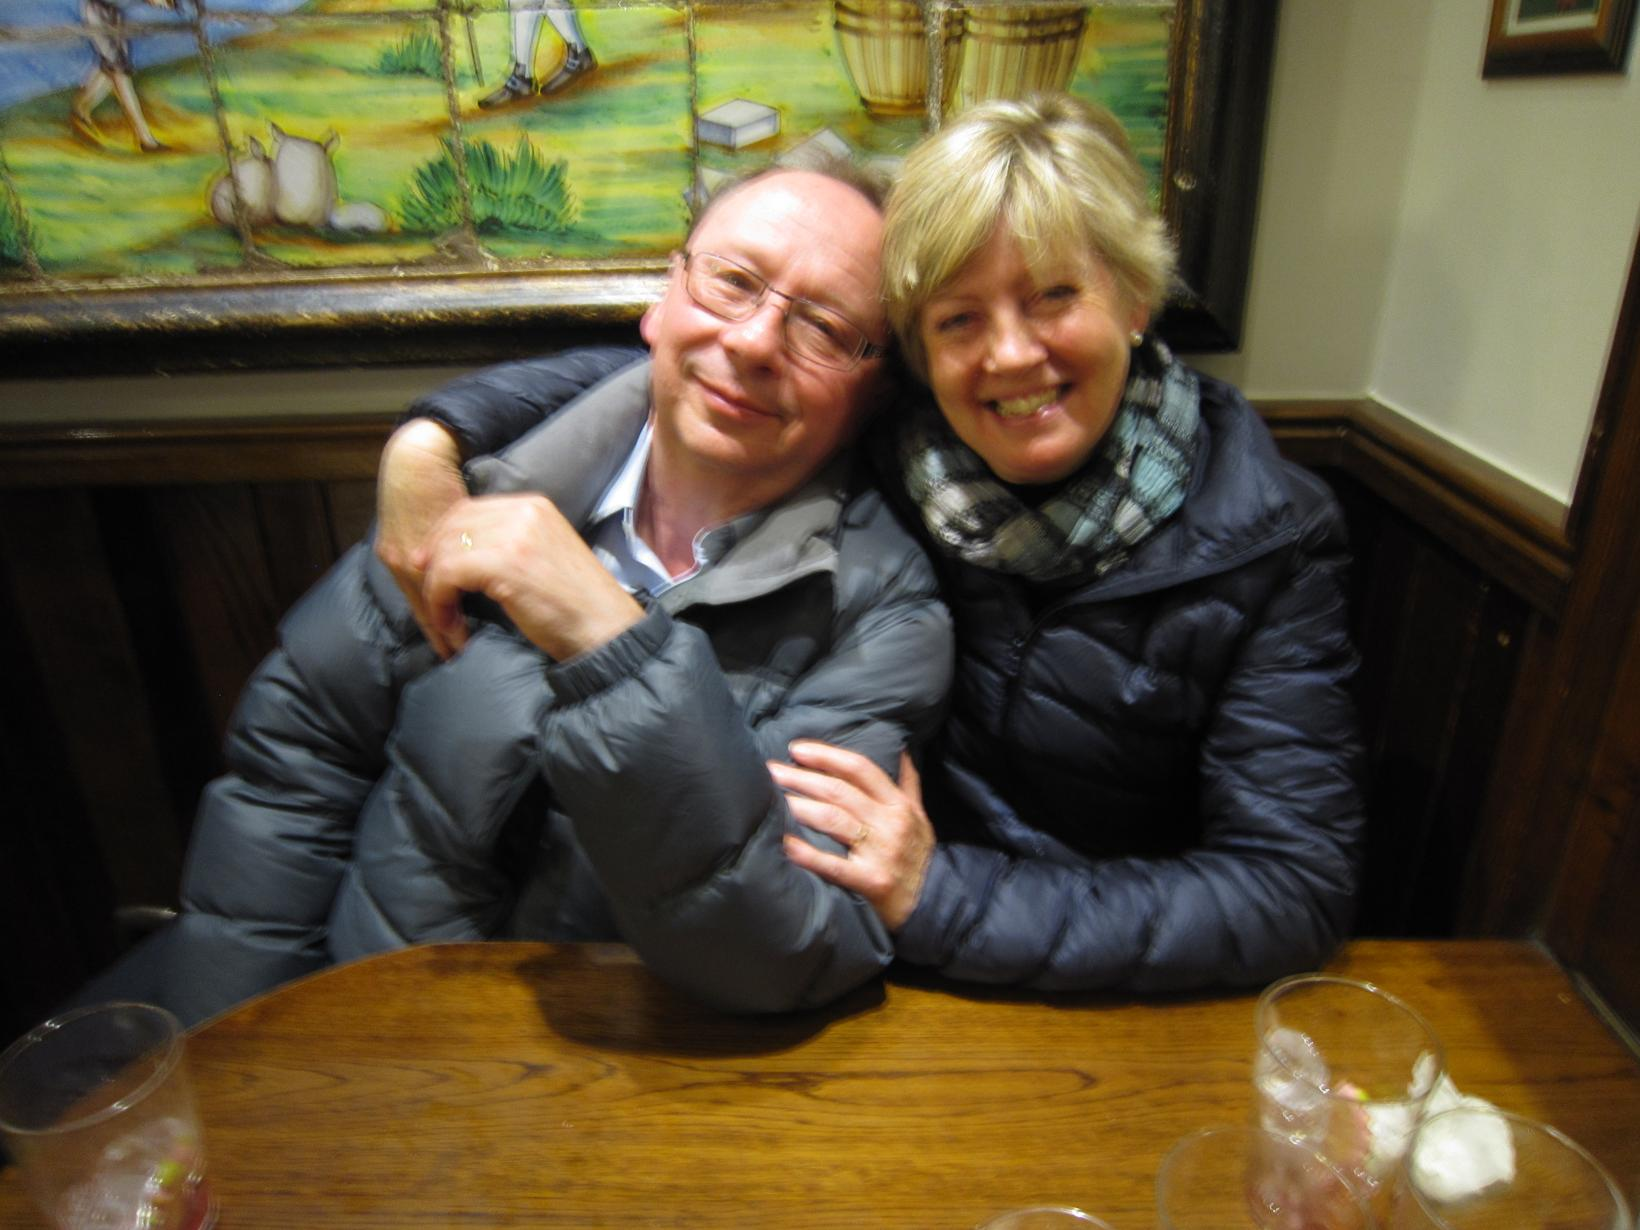 Anne & George from Sydney, New South Wales, Australia